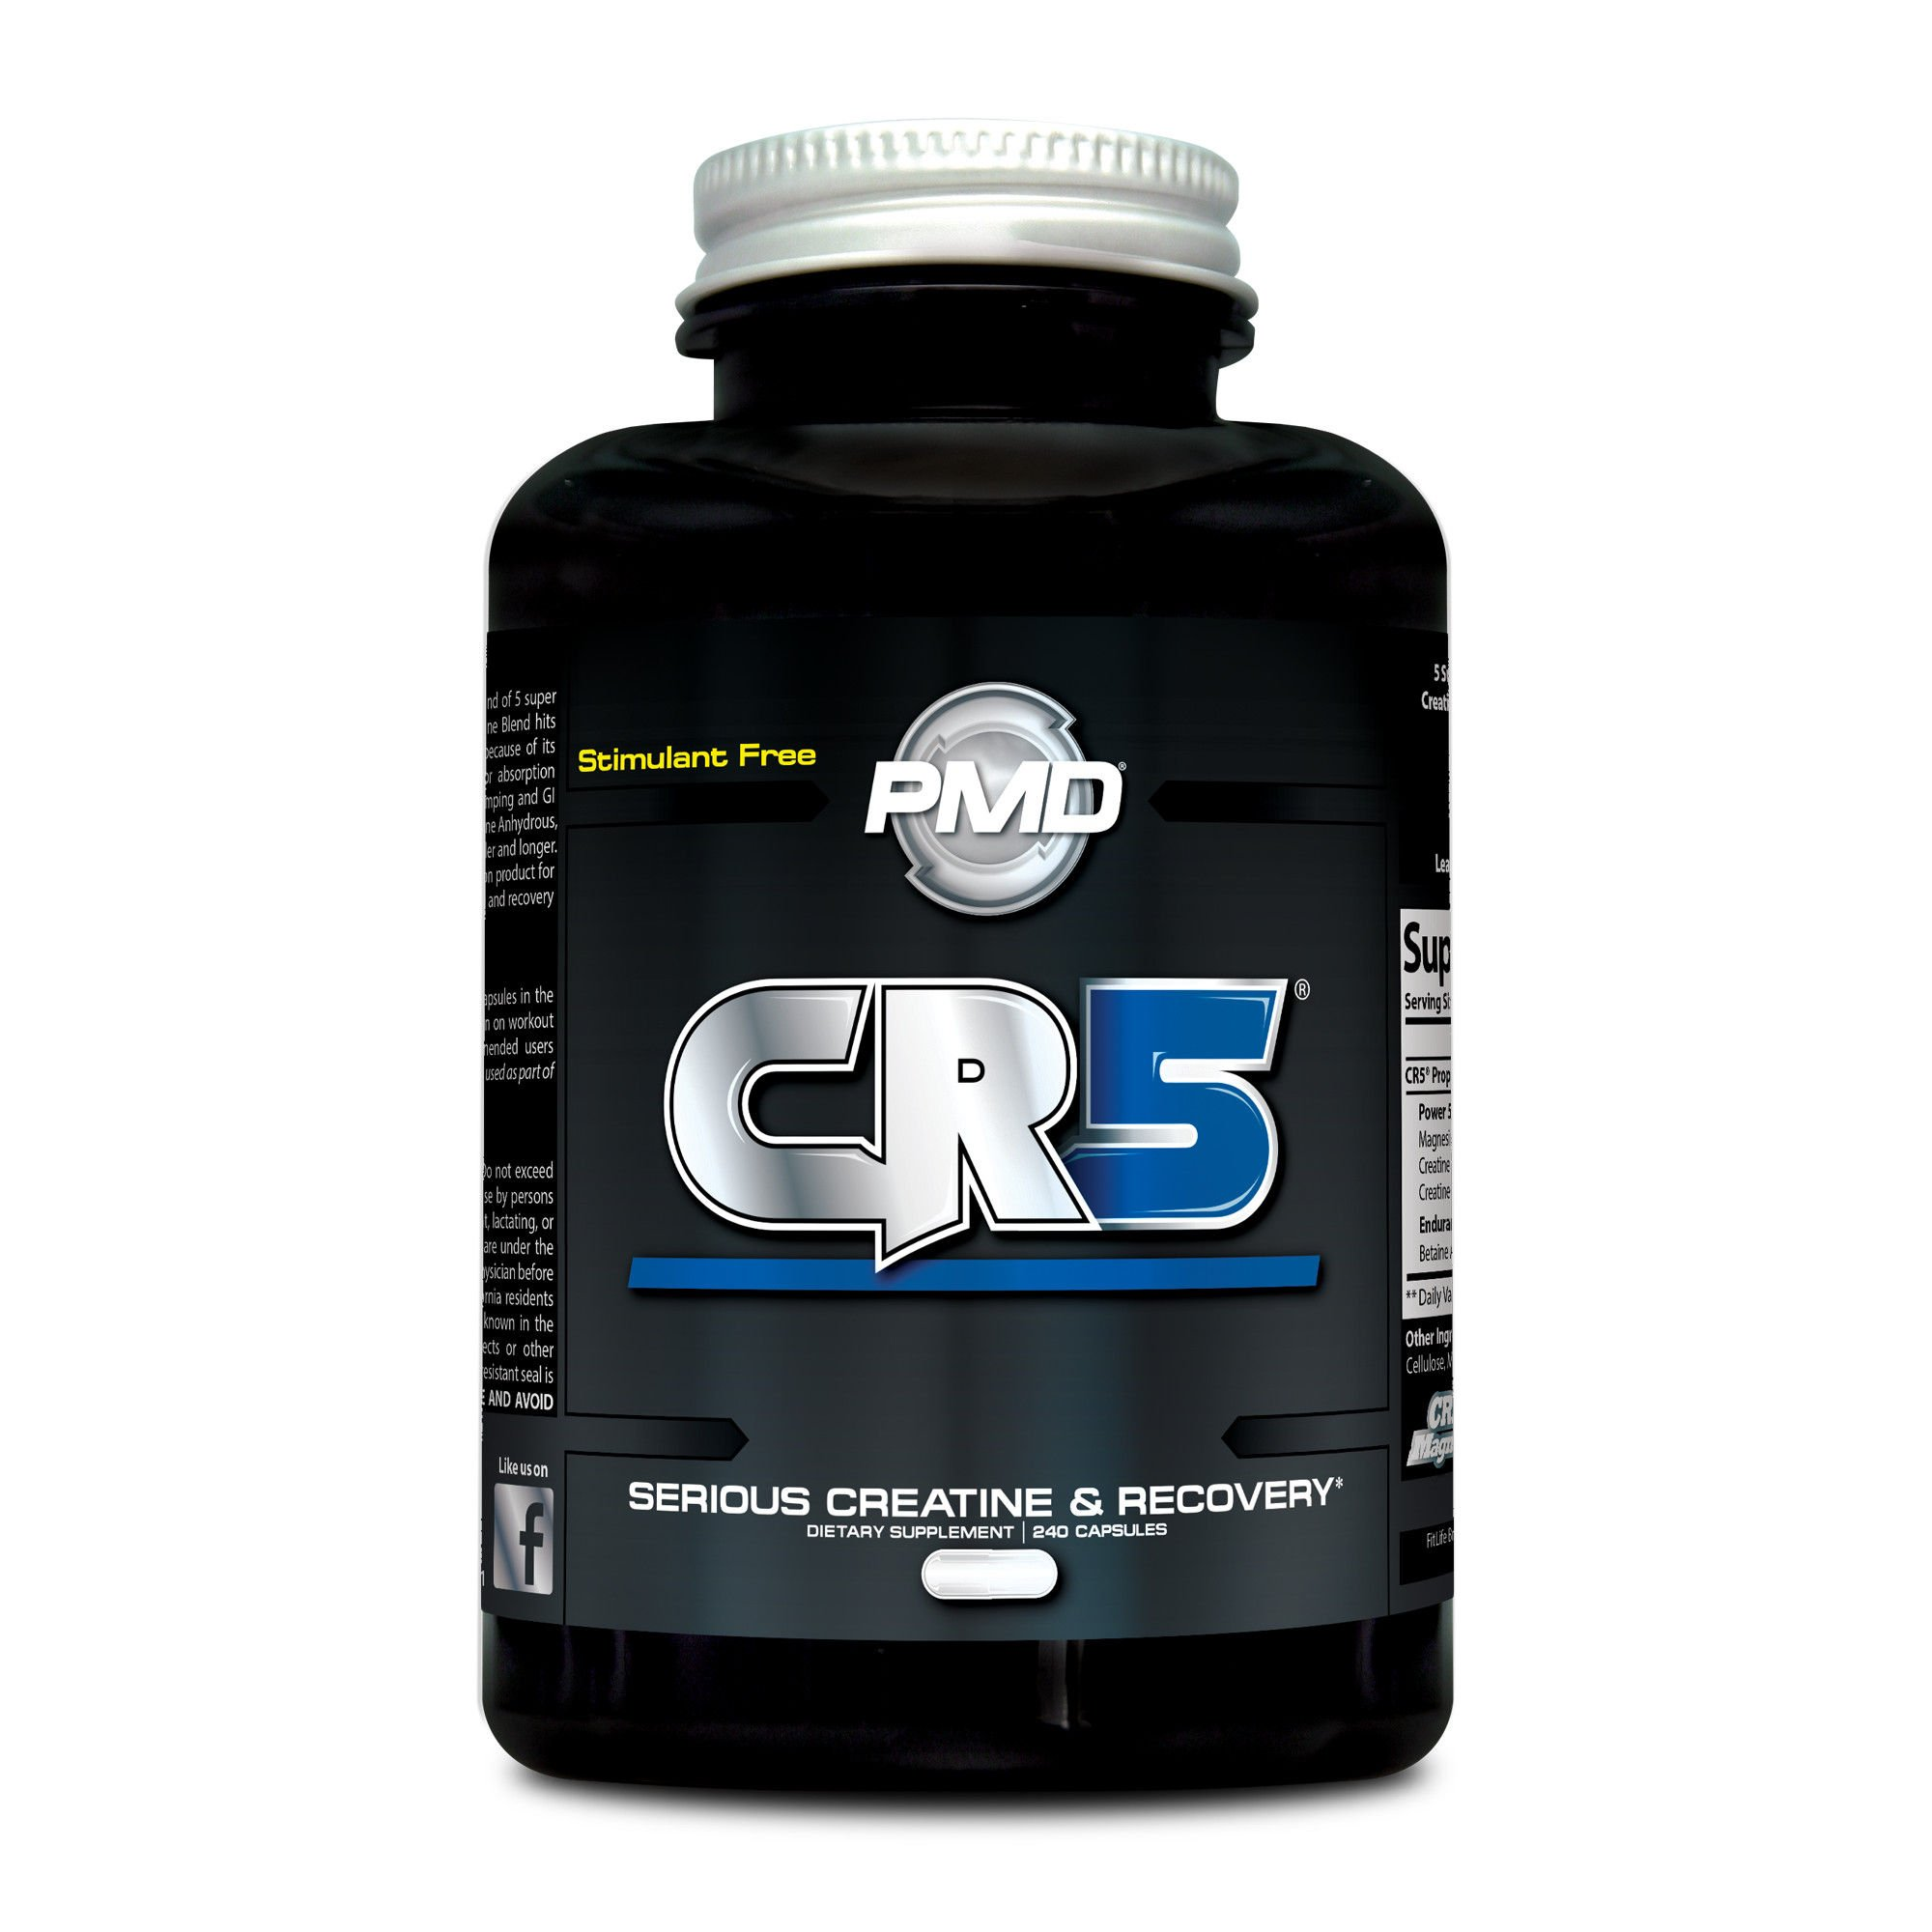 PMD Sports CR5 Professional Creatine Complex - Strength Training, Cardio Exercise, Athletic Performance, Lean Muscle Mass, Fast Recovery and Reduce Soreness - 240 Capsules … by PMD (Image #1)